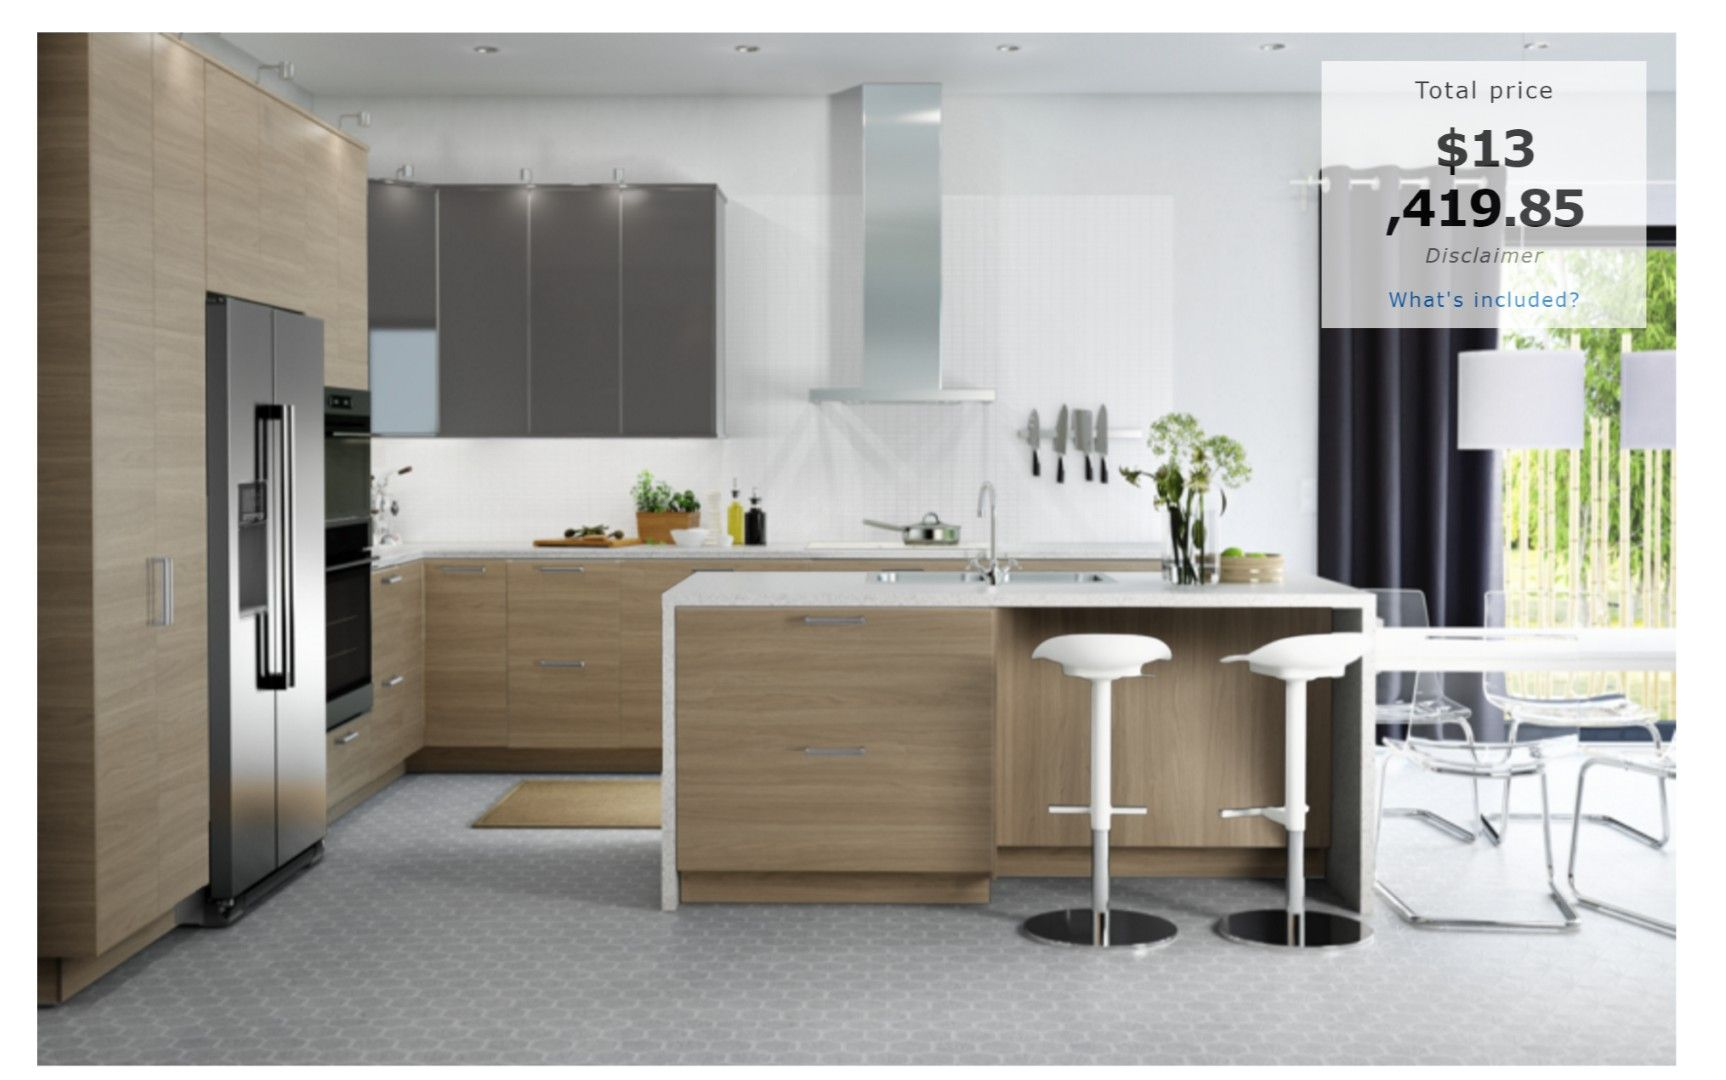 Awesome Ikea Kitchen Cabinets Cost Per Linear Foot The Most Stylish And Also Interesting Ikea Kitchen Cabinets Cost Per Linear Foot Intended For Invigorate Y